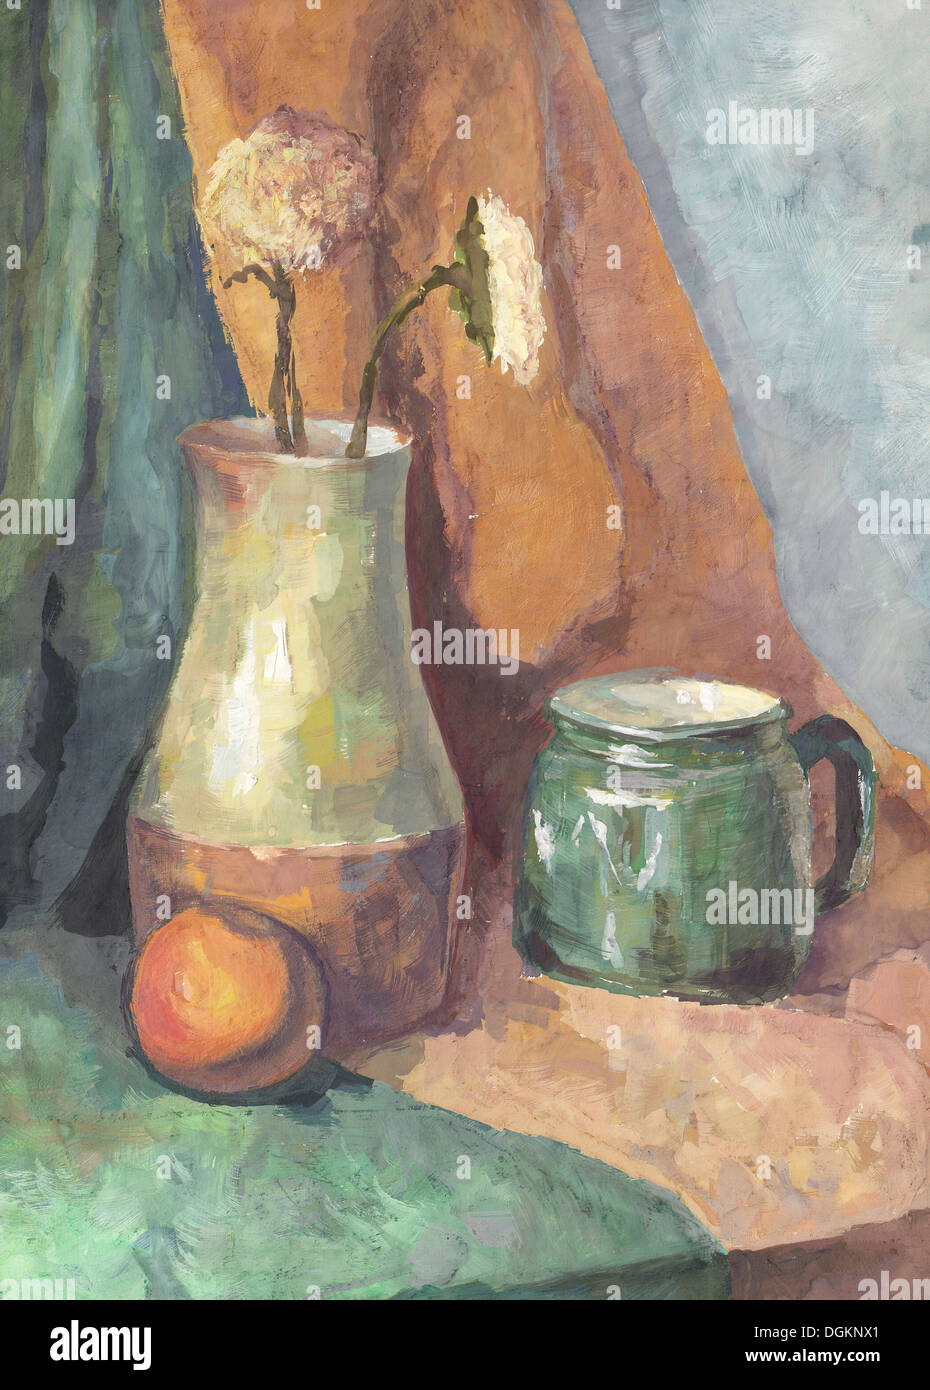 Still life: Flowers in Jug and Mug. Painting. Gouache on Paper - Stock Image